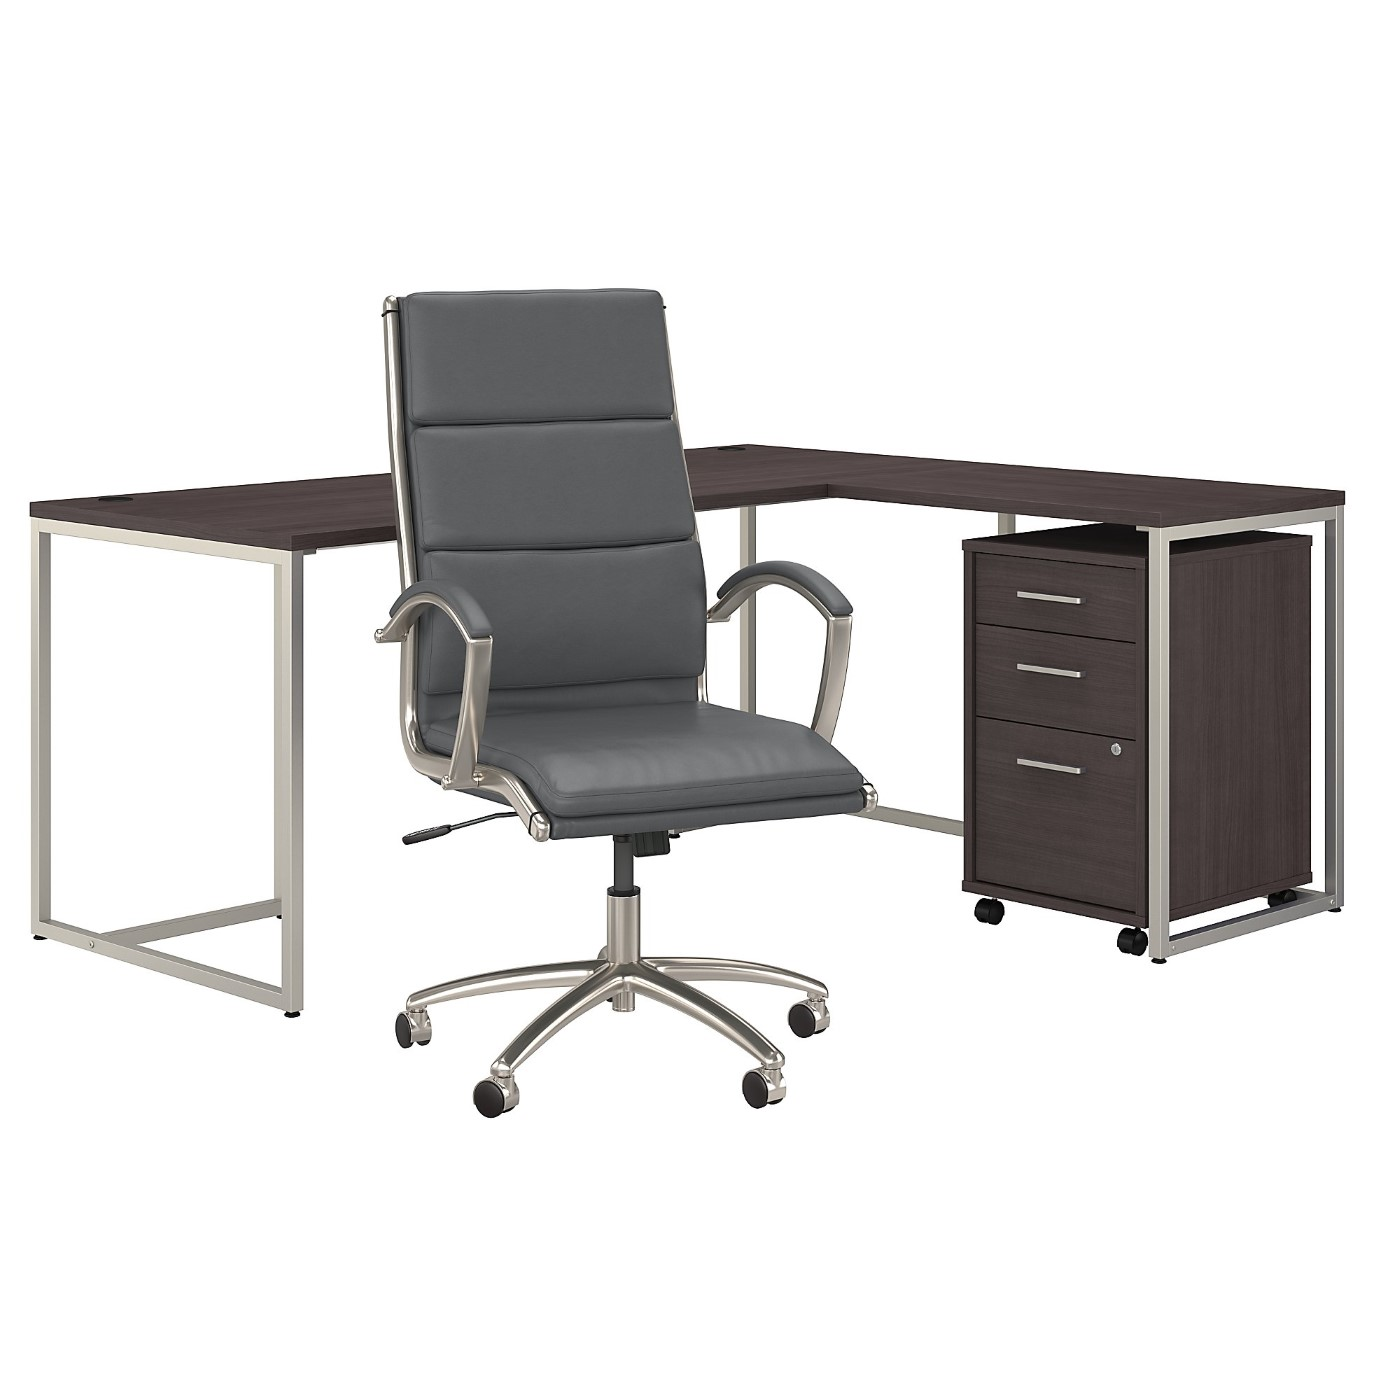 OFFICE BY KATHY IRELAND® METHOD 72W L SHAPED DESK WITH CHAIR AND MOBILE FILE CABINET. FREE SHIPPING